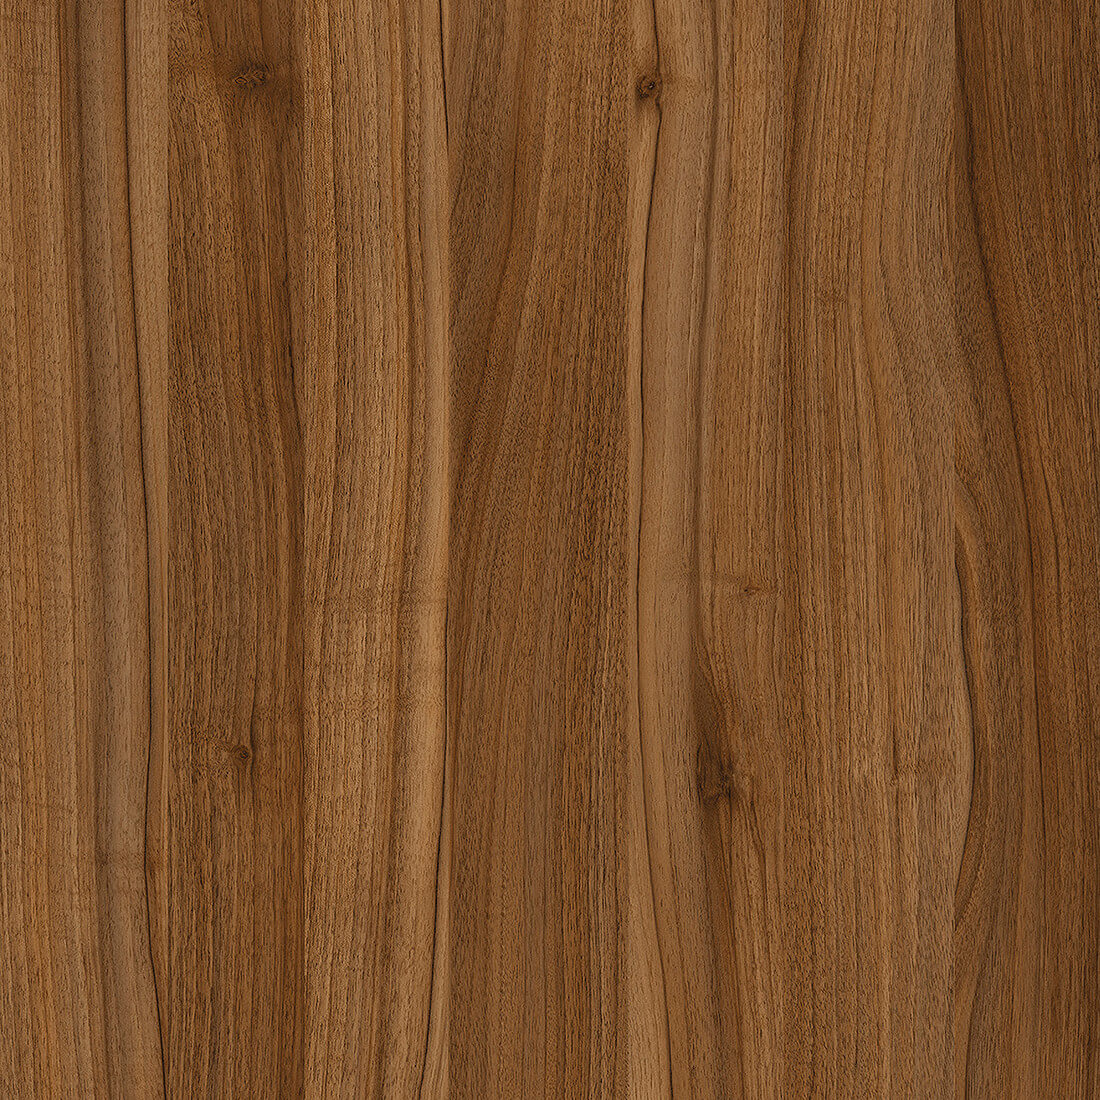 Dark Lyon Walnut